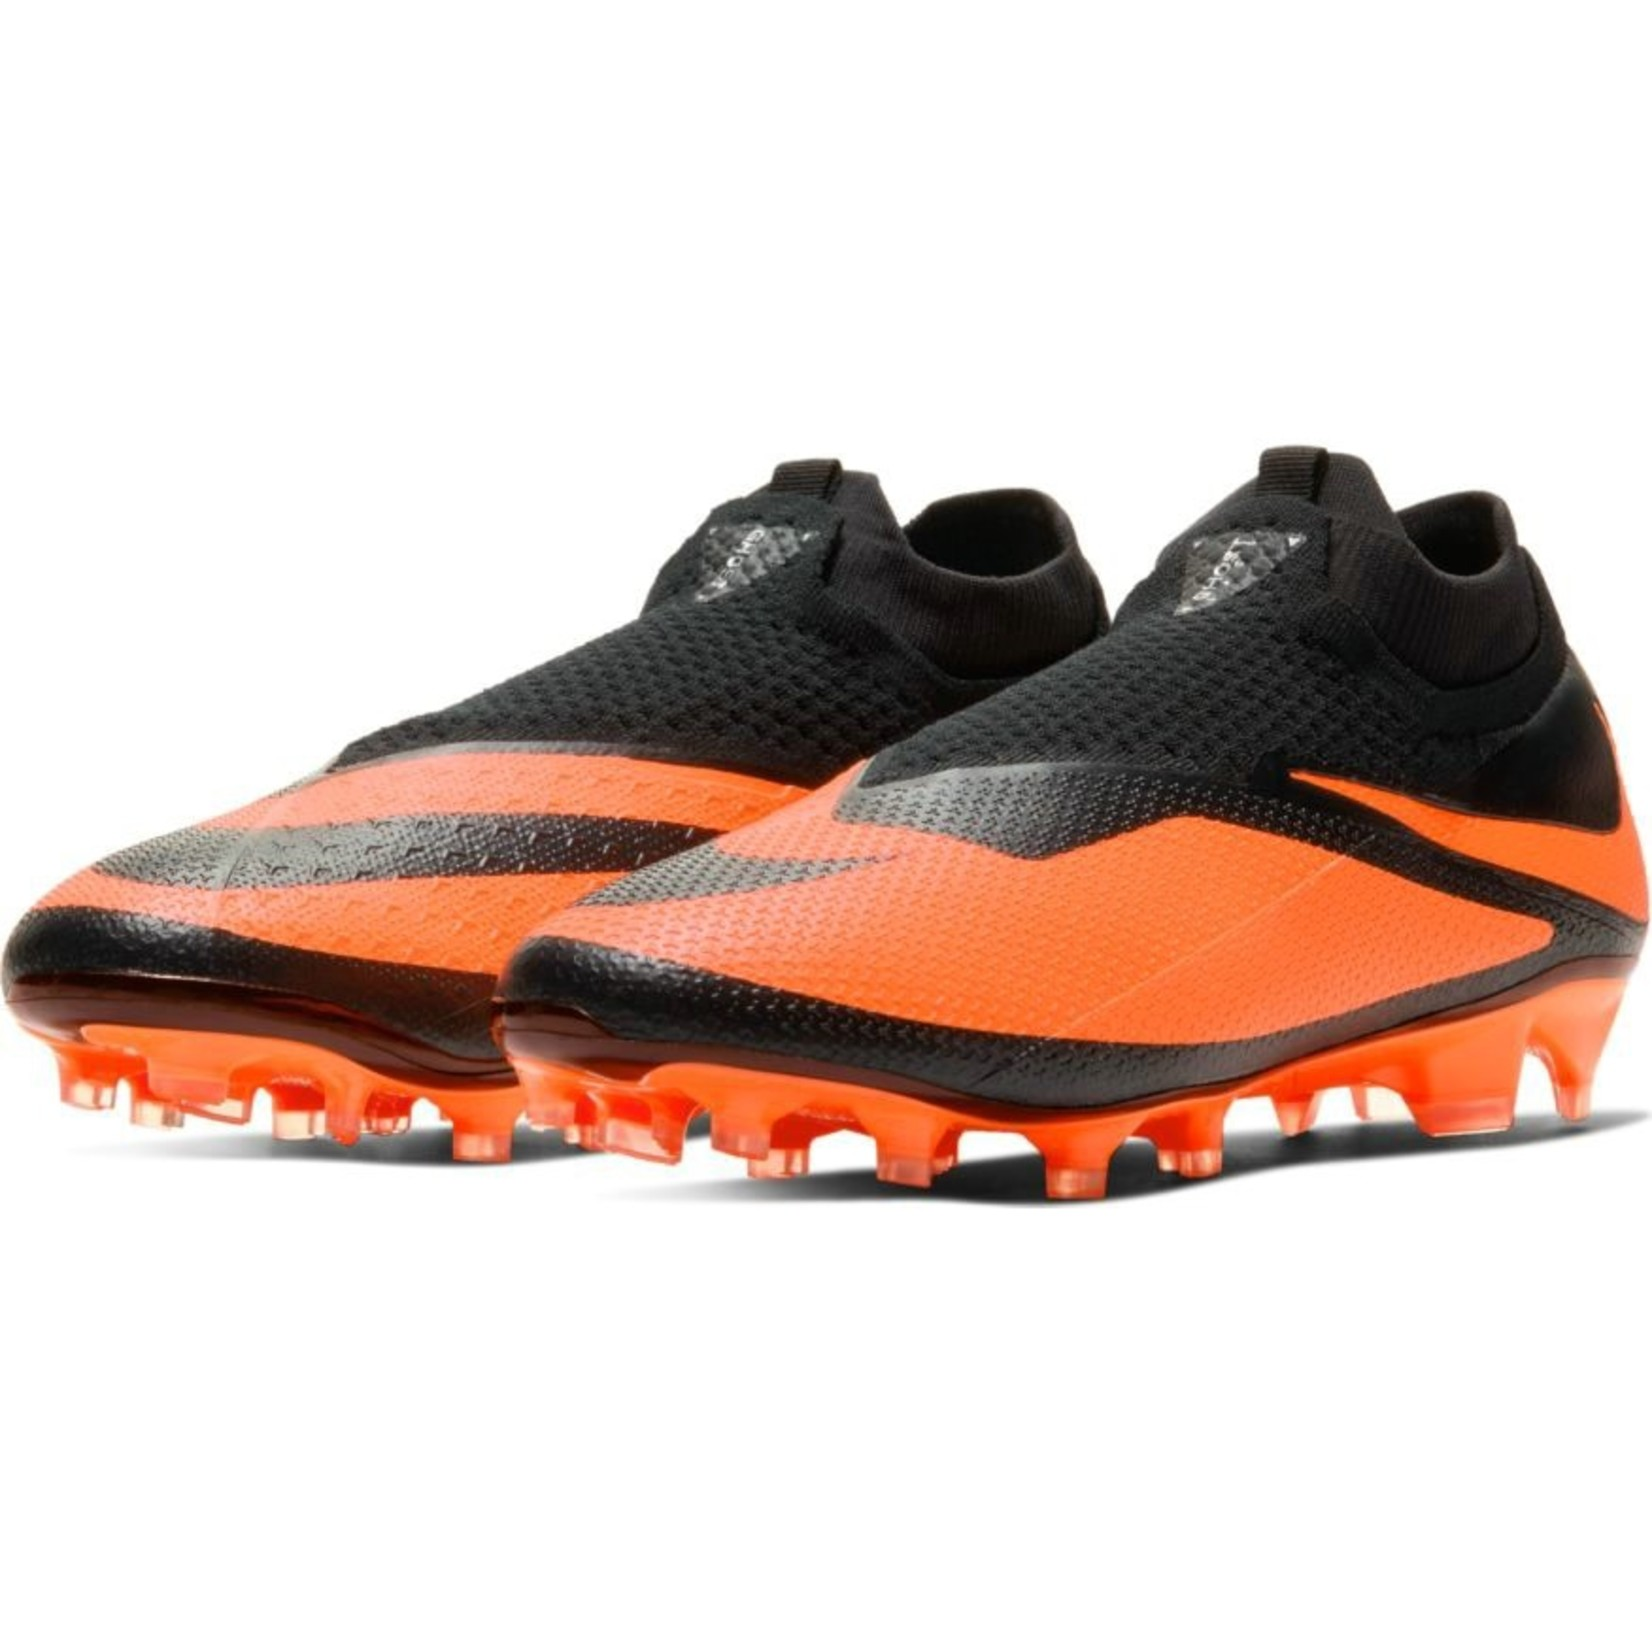 NIKE PHANTOM VISION 2 ELITE DF FG (ORANGE/BLACK)